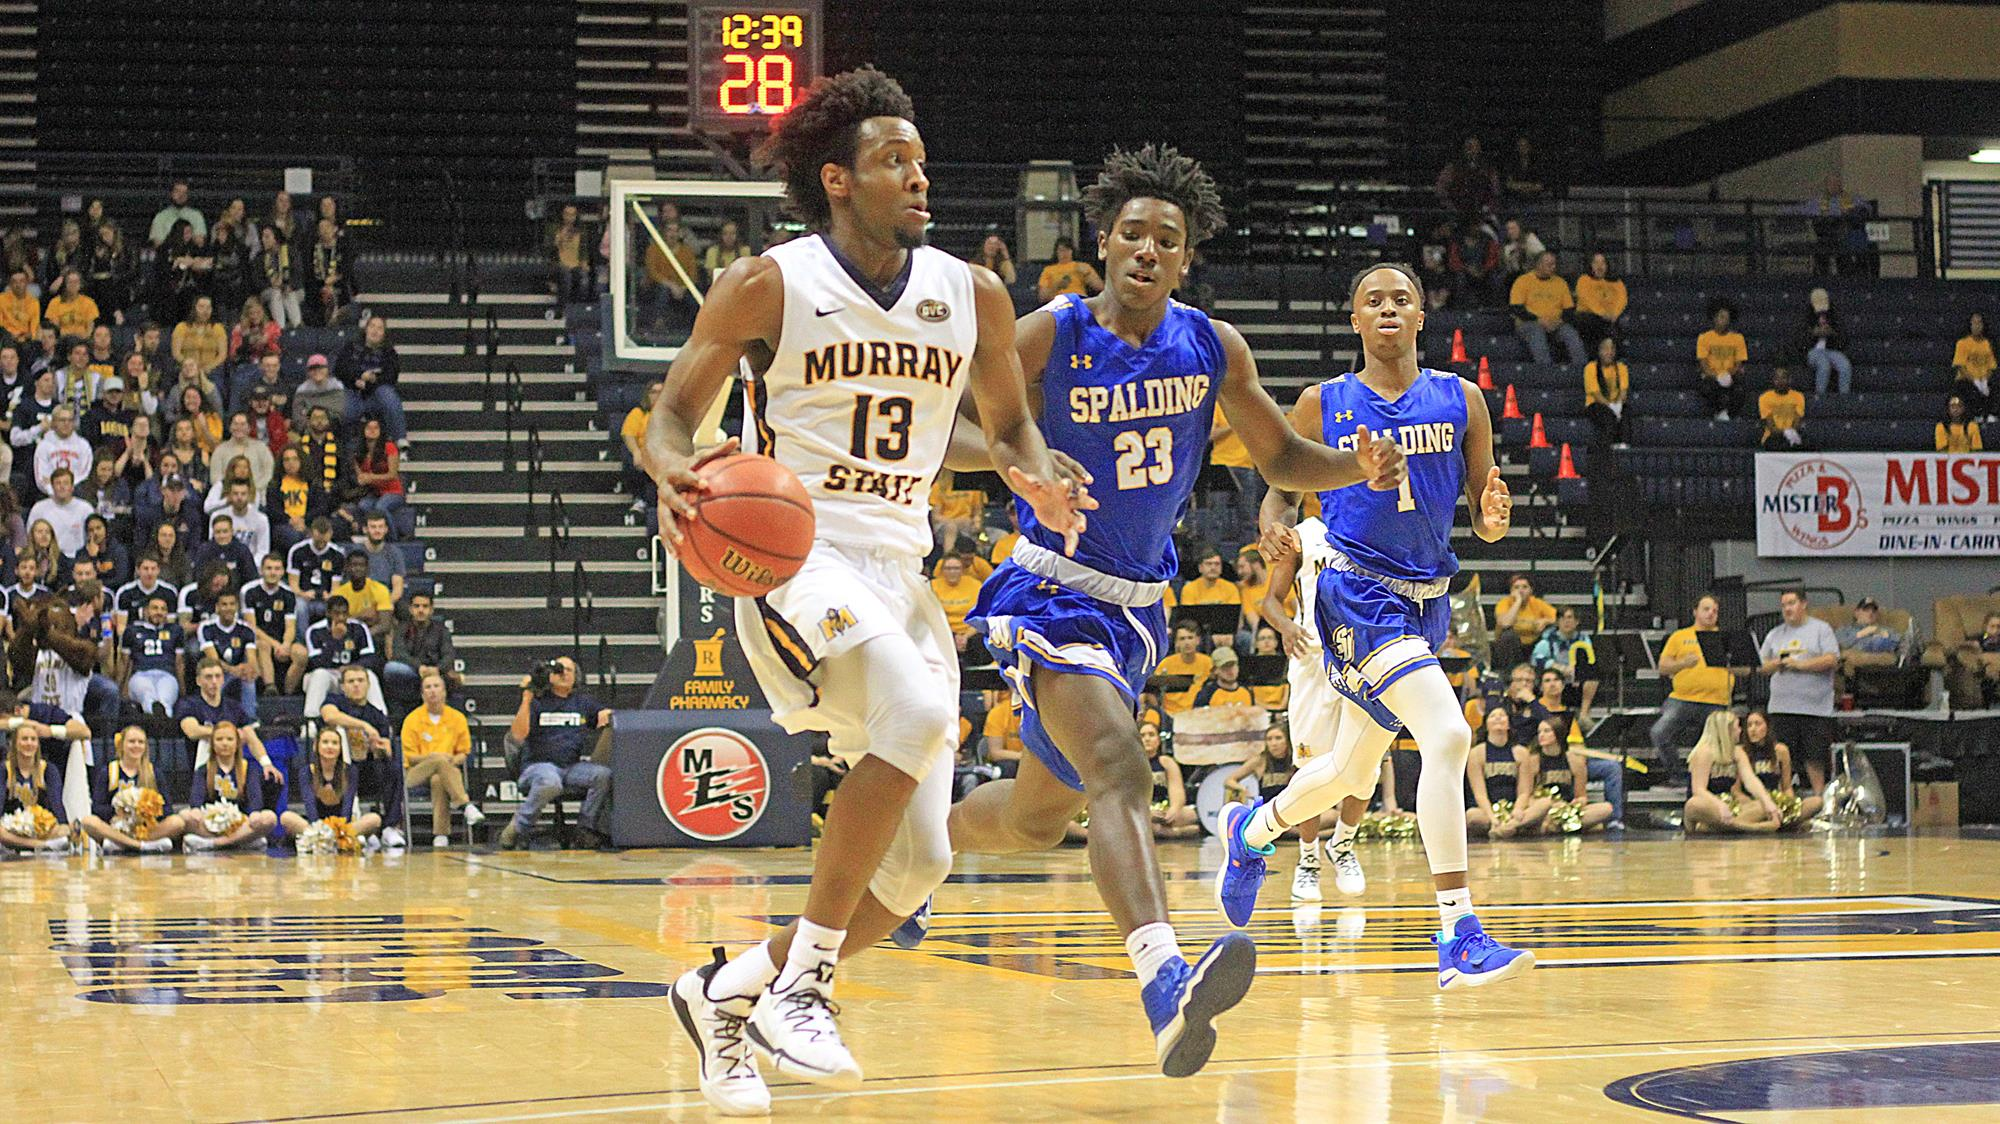 50ebdd6e2f6 Records Fall In Racers Romp Over Spalding - Murray State University ...